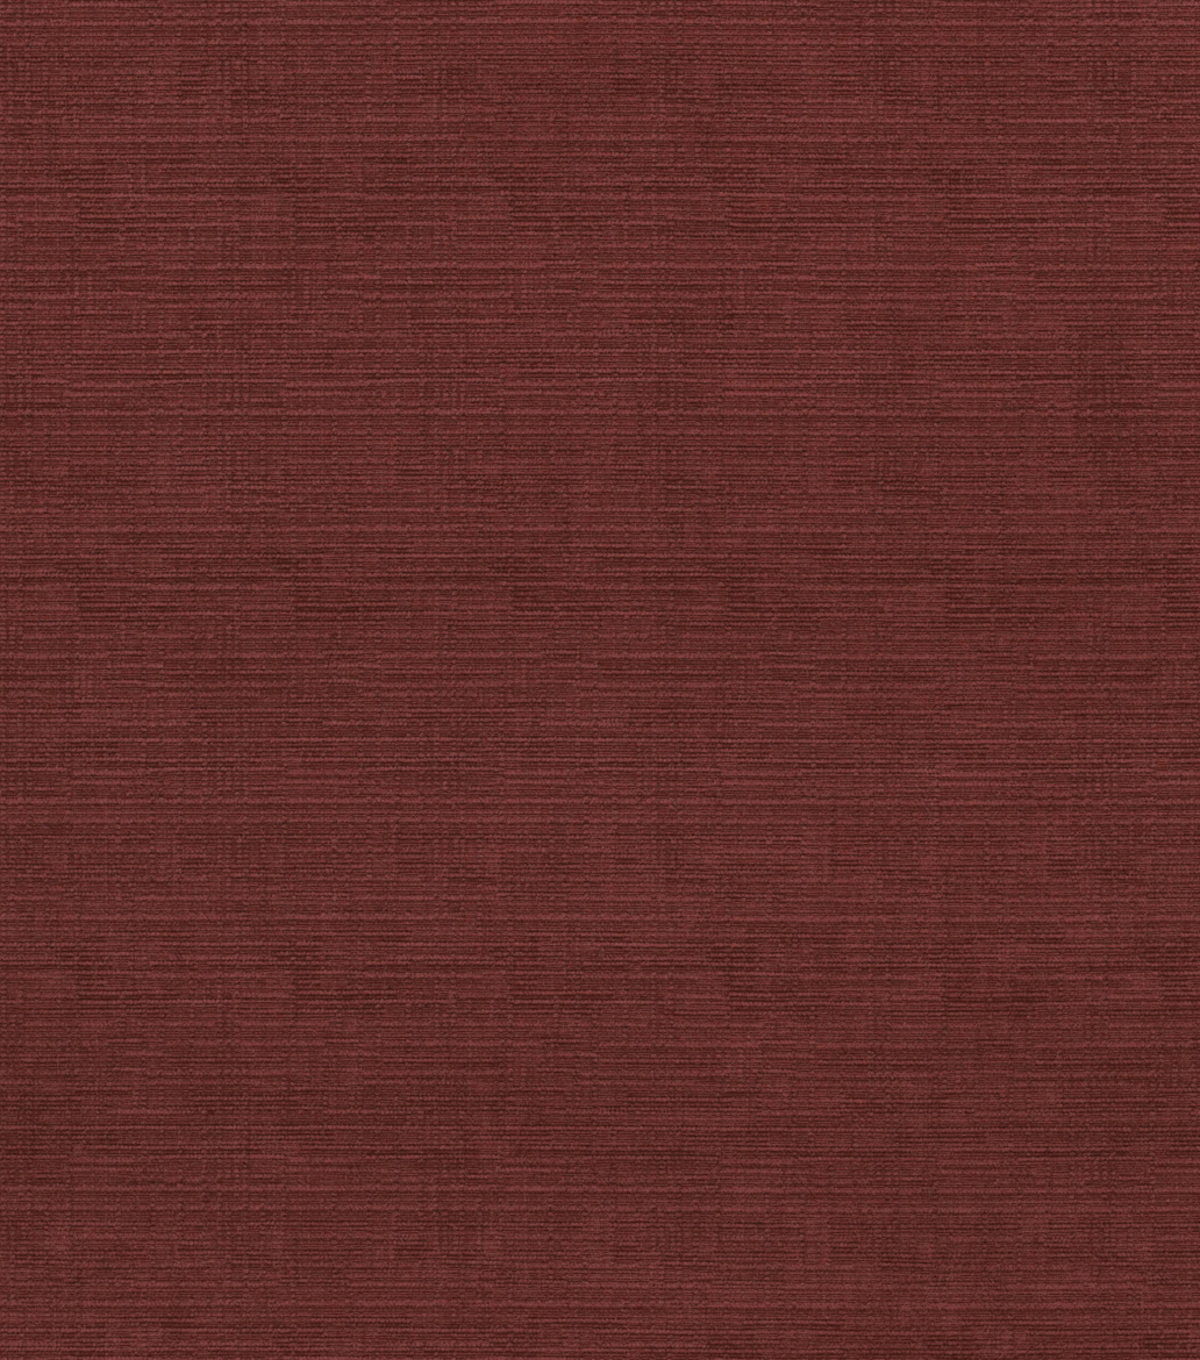 Home Decor 8\u0022x8\u0022 Fabric Swatch-Aspen Burgundy